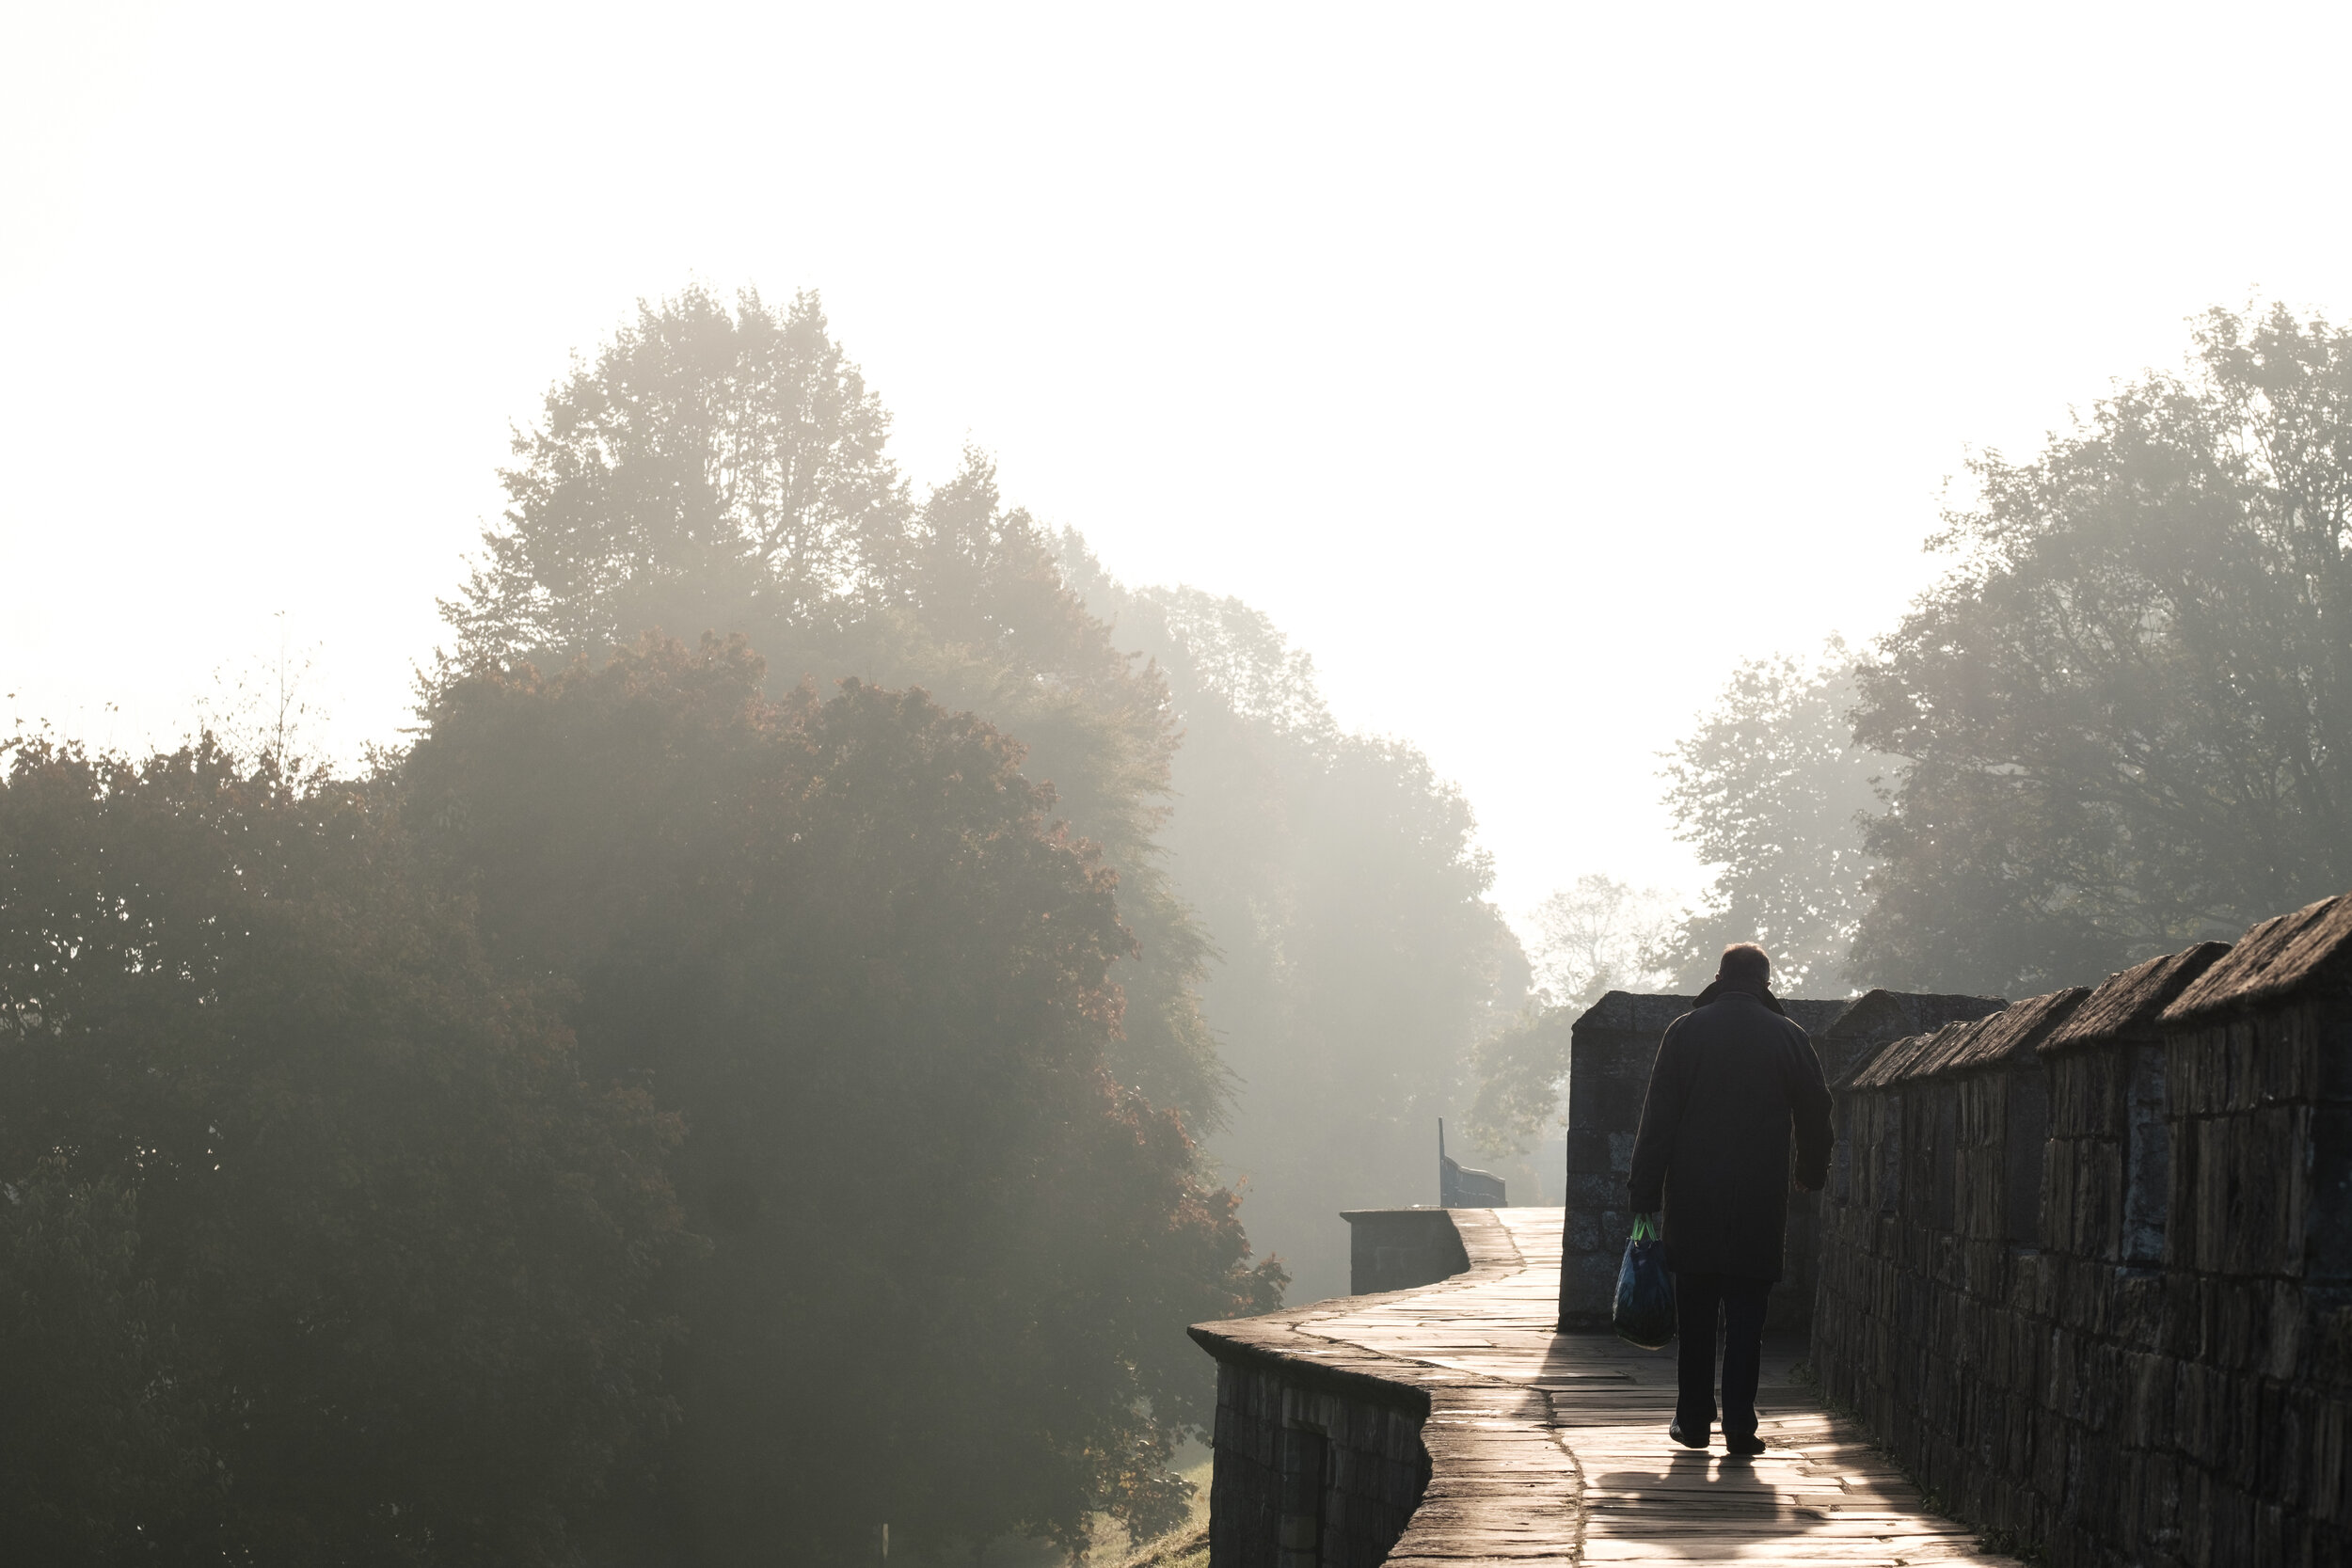 A man is out for an early fall morning walk at the historic walls of York in England